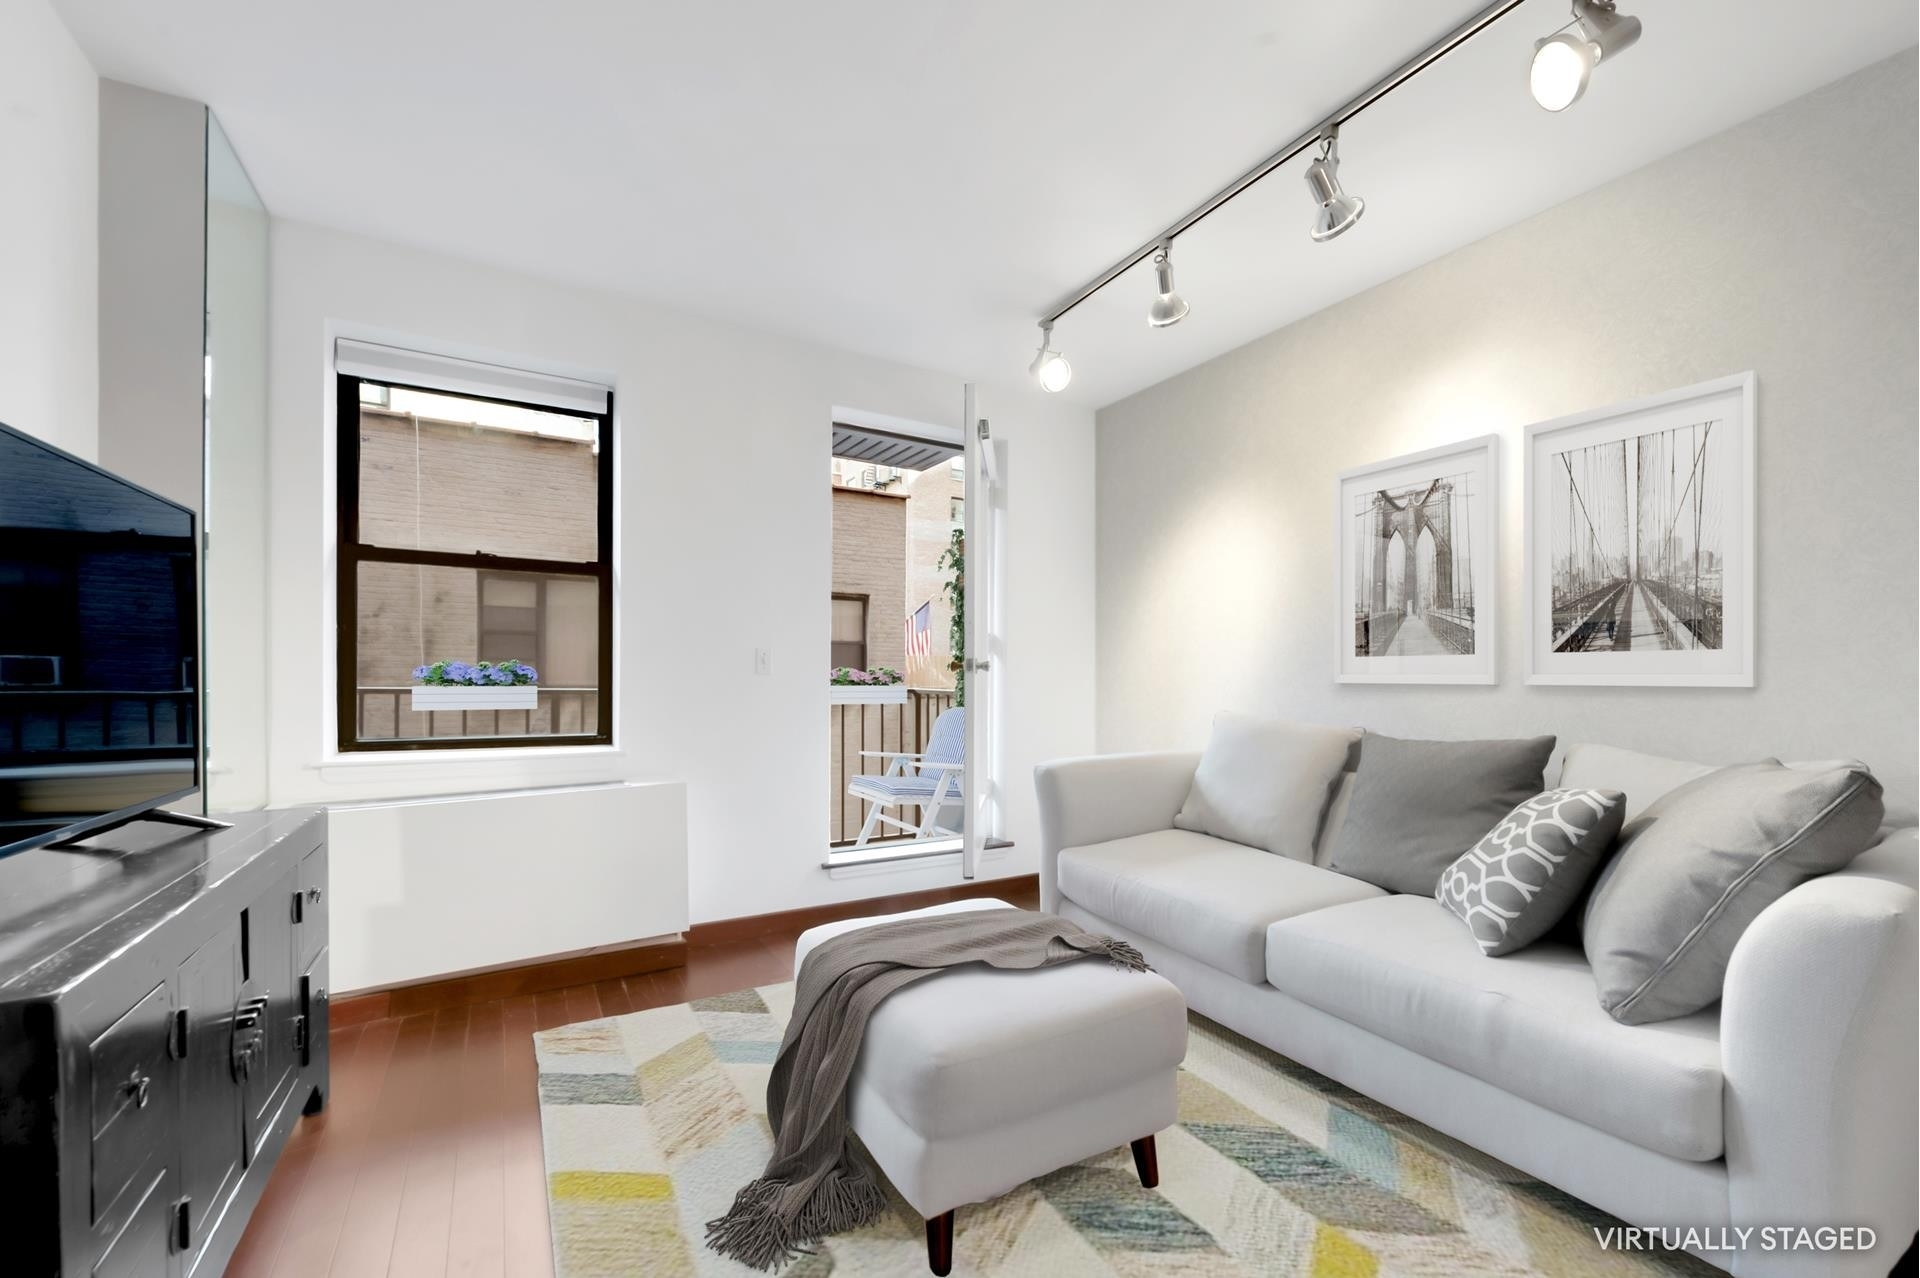 Property at THE CHESTERFIELD, 186 W 80TH ST , 6M Upper West Side, New York, NY 10024